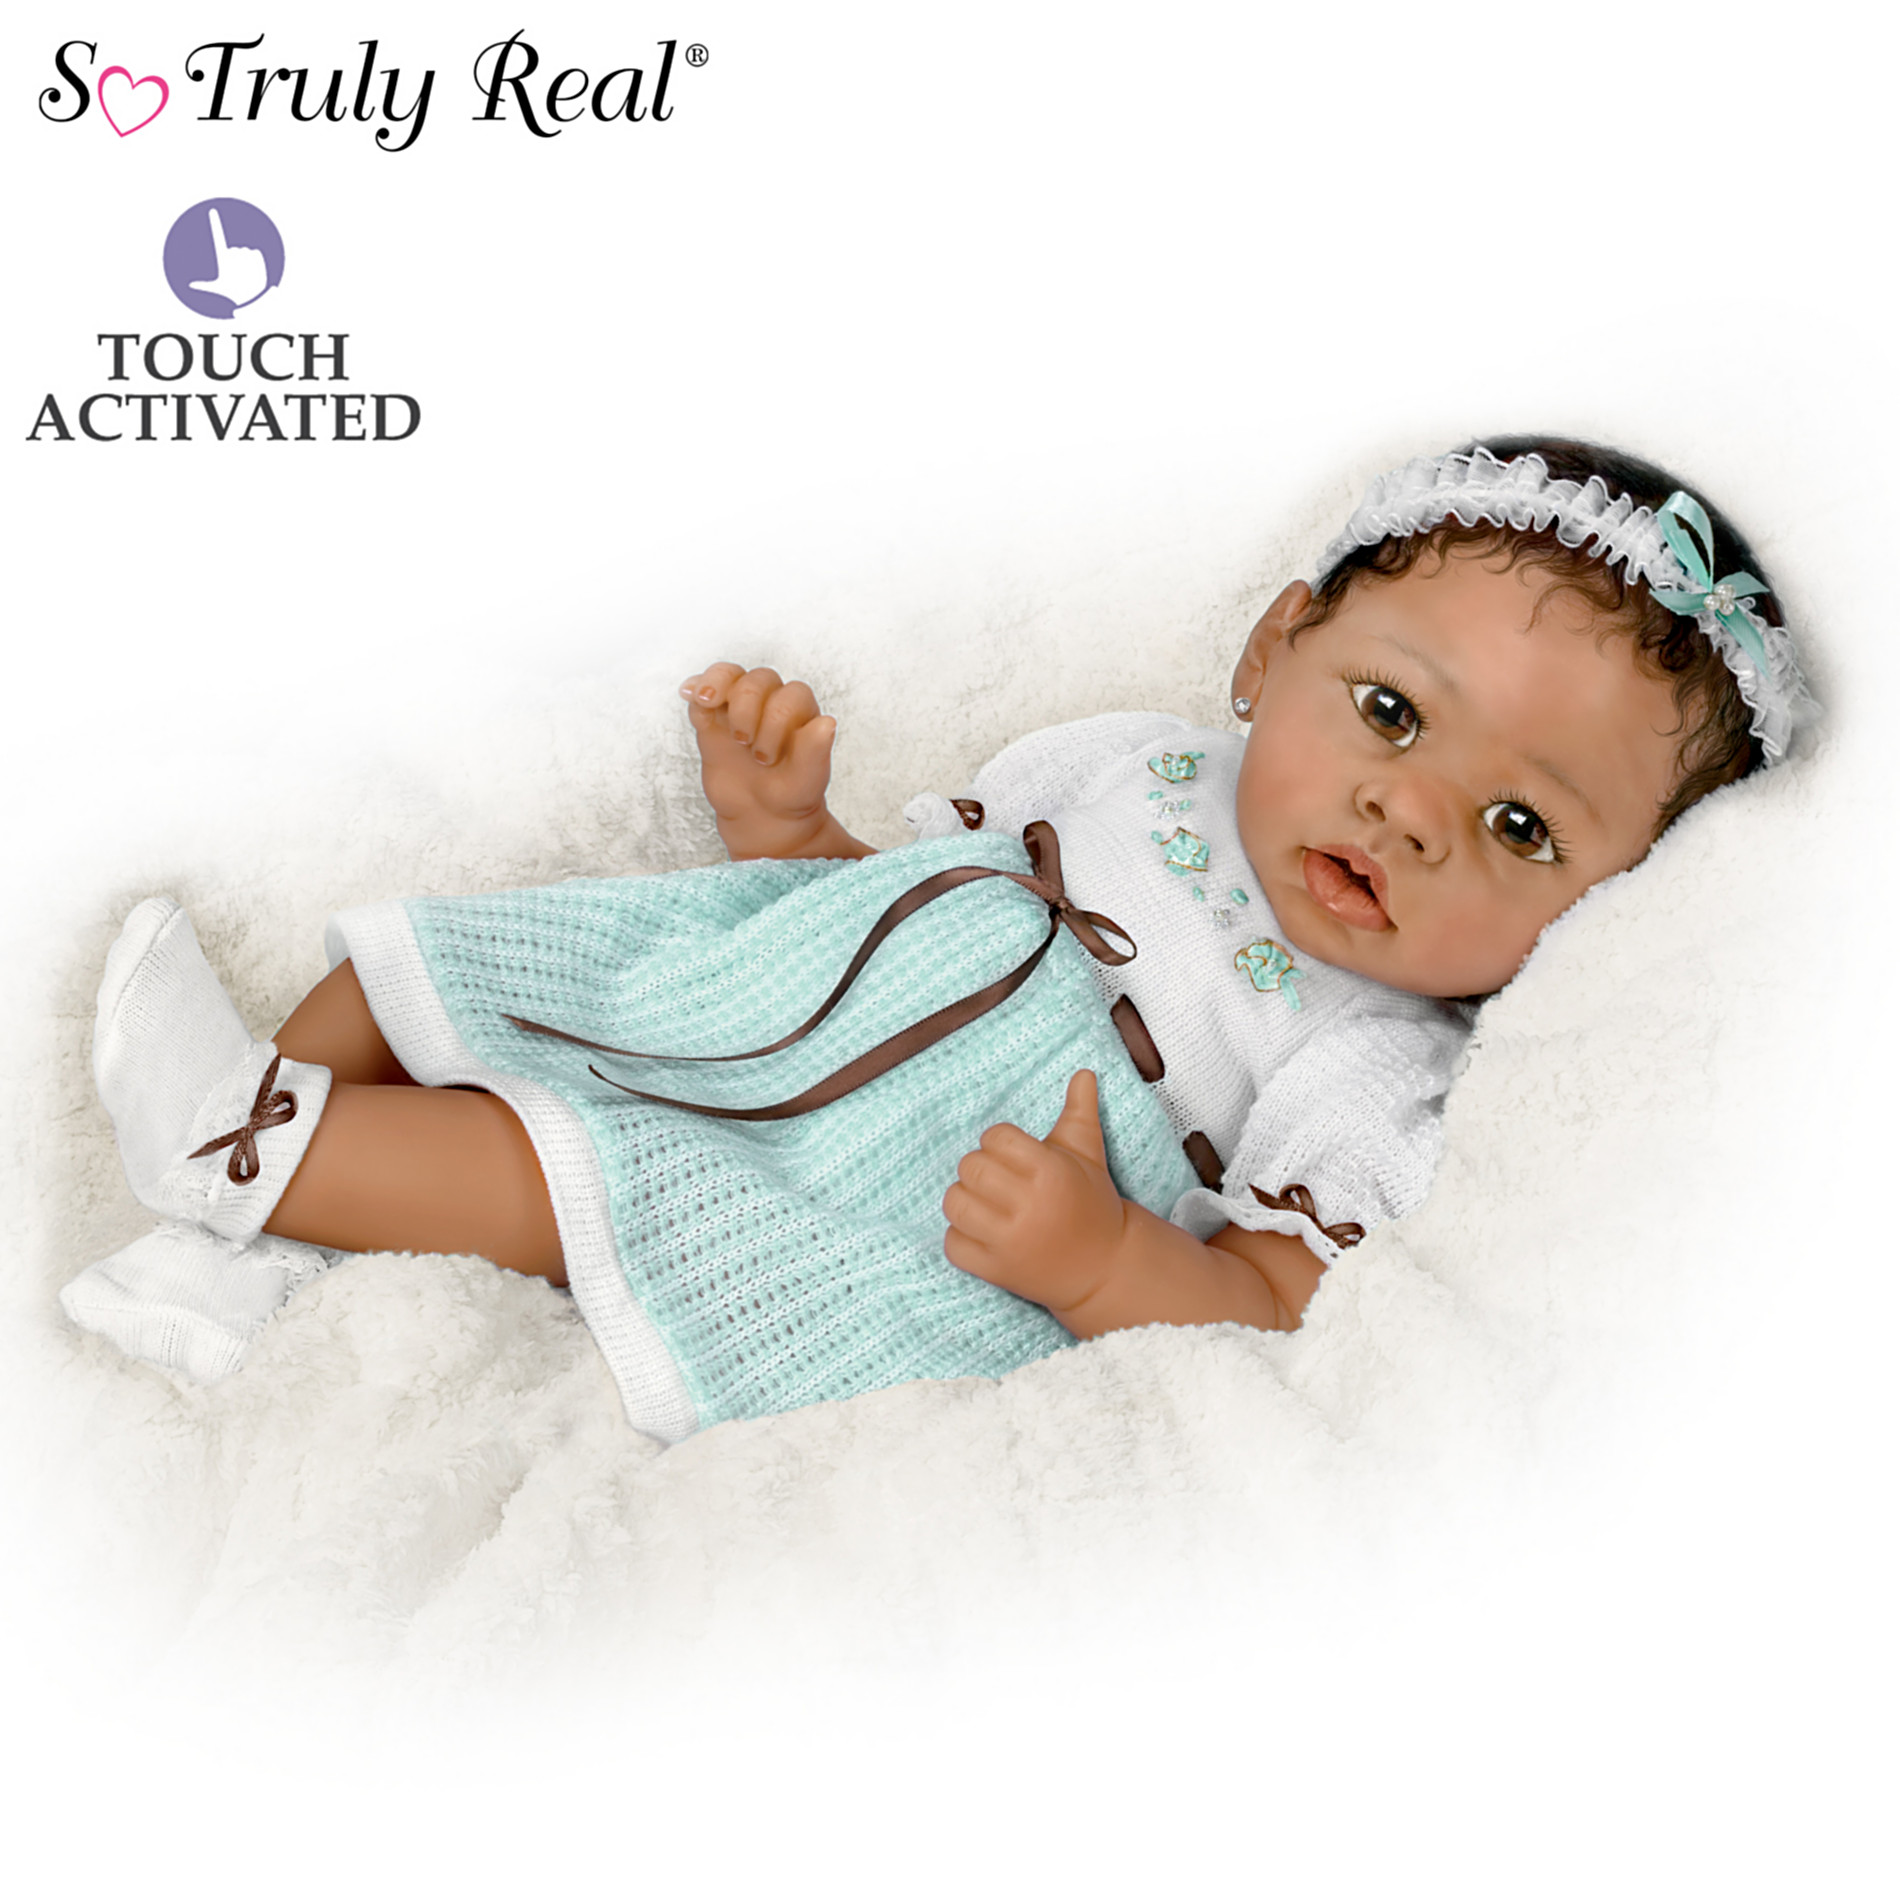 The Ashton Drake Galleries Alicia's Gentle Touch Realistic Interactive Baby Doll at Sears.com